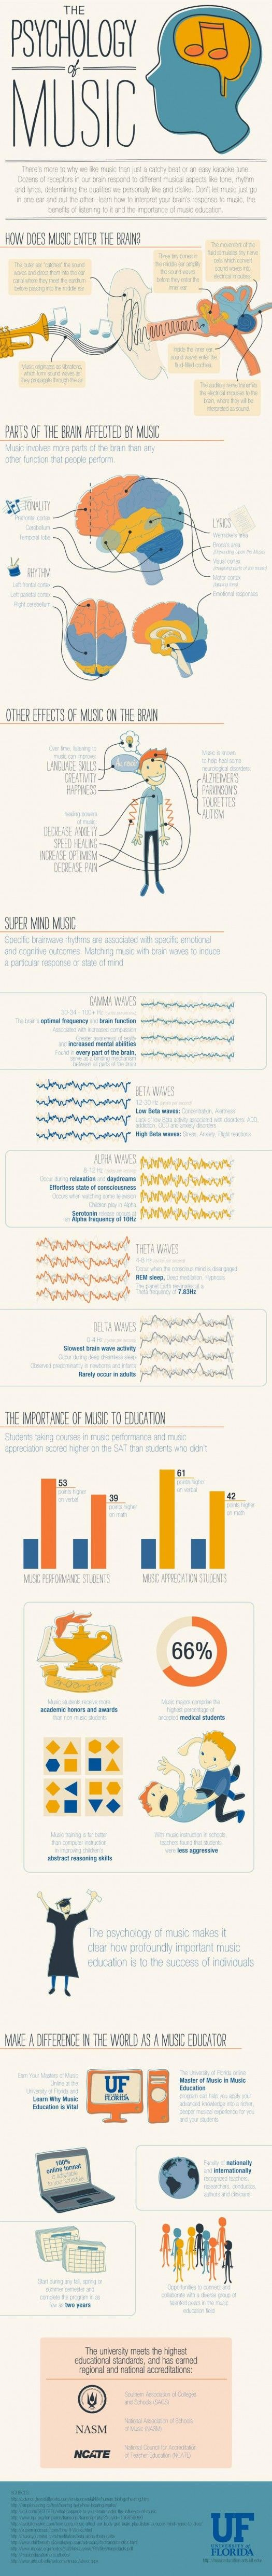 The Psychology of Music.